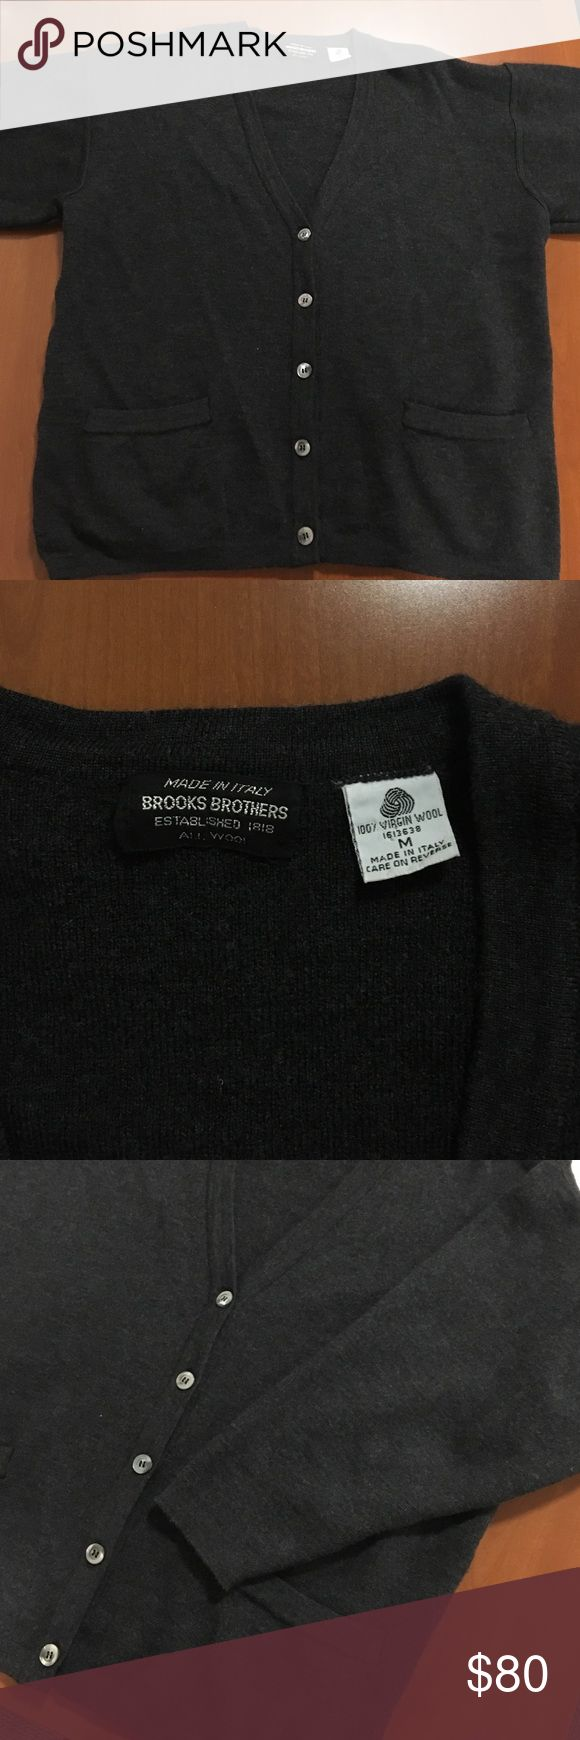 Brooks Brothers Virgin Wool Cardigan 100% Virgin Wool, Made in Italy. Worn once. Color is Heathered Grey. Brooks Brothers Sweaters Cardigan